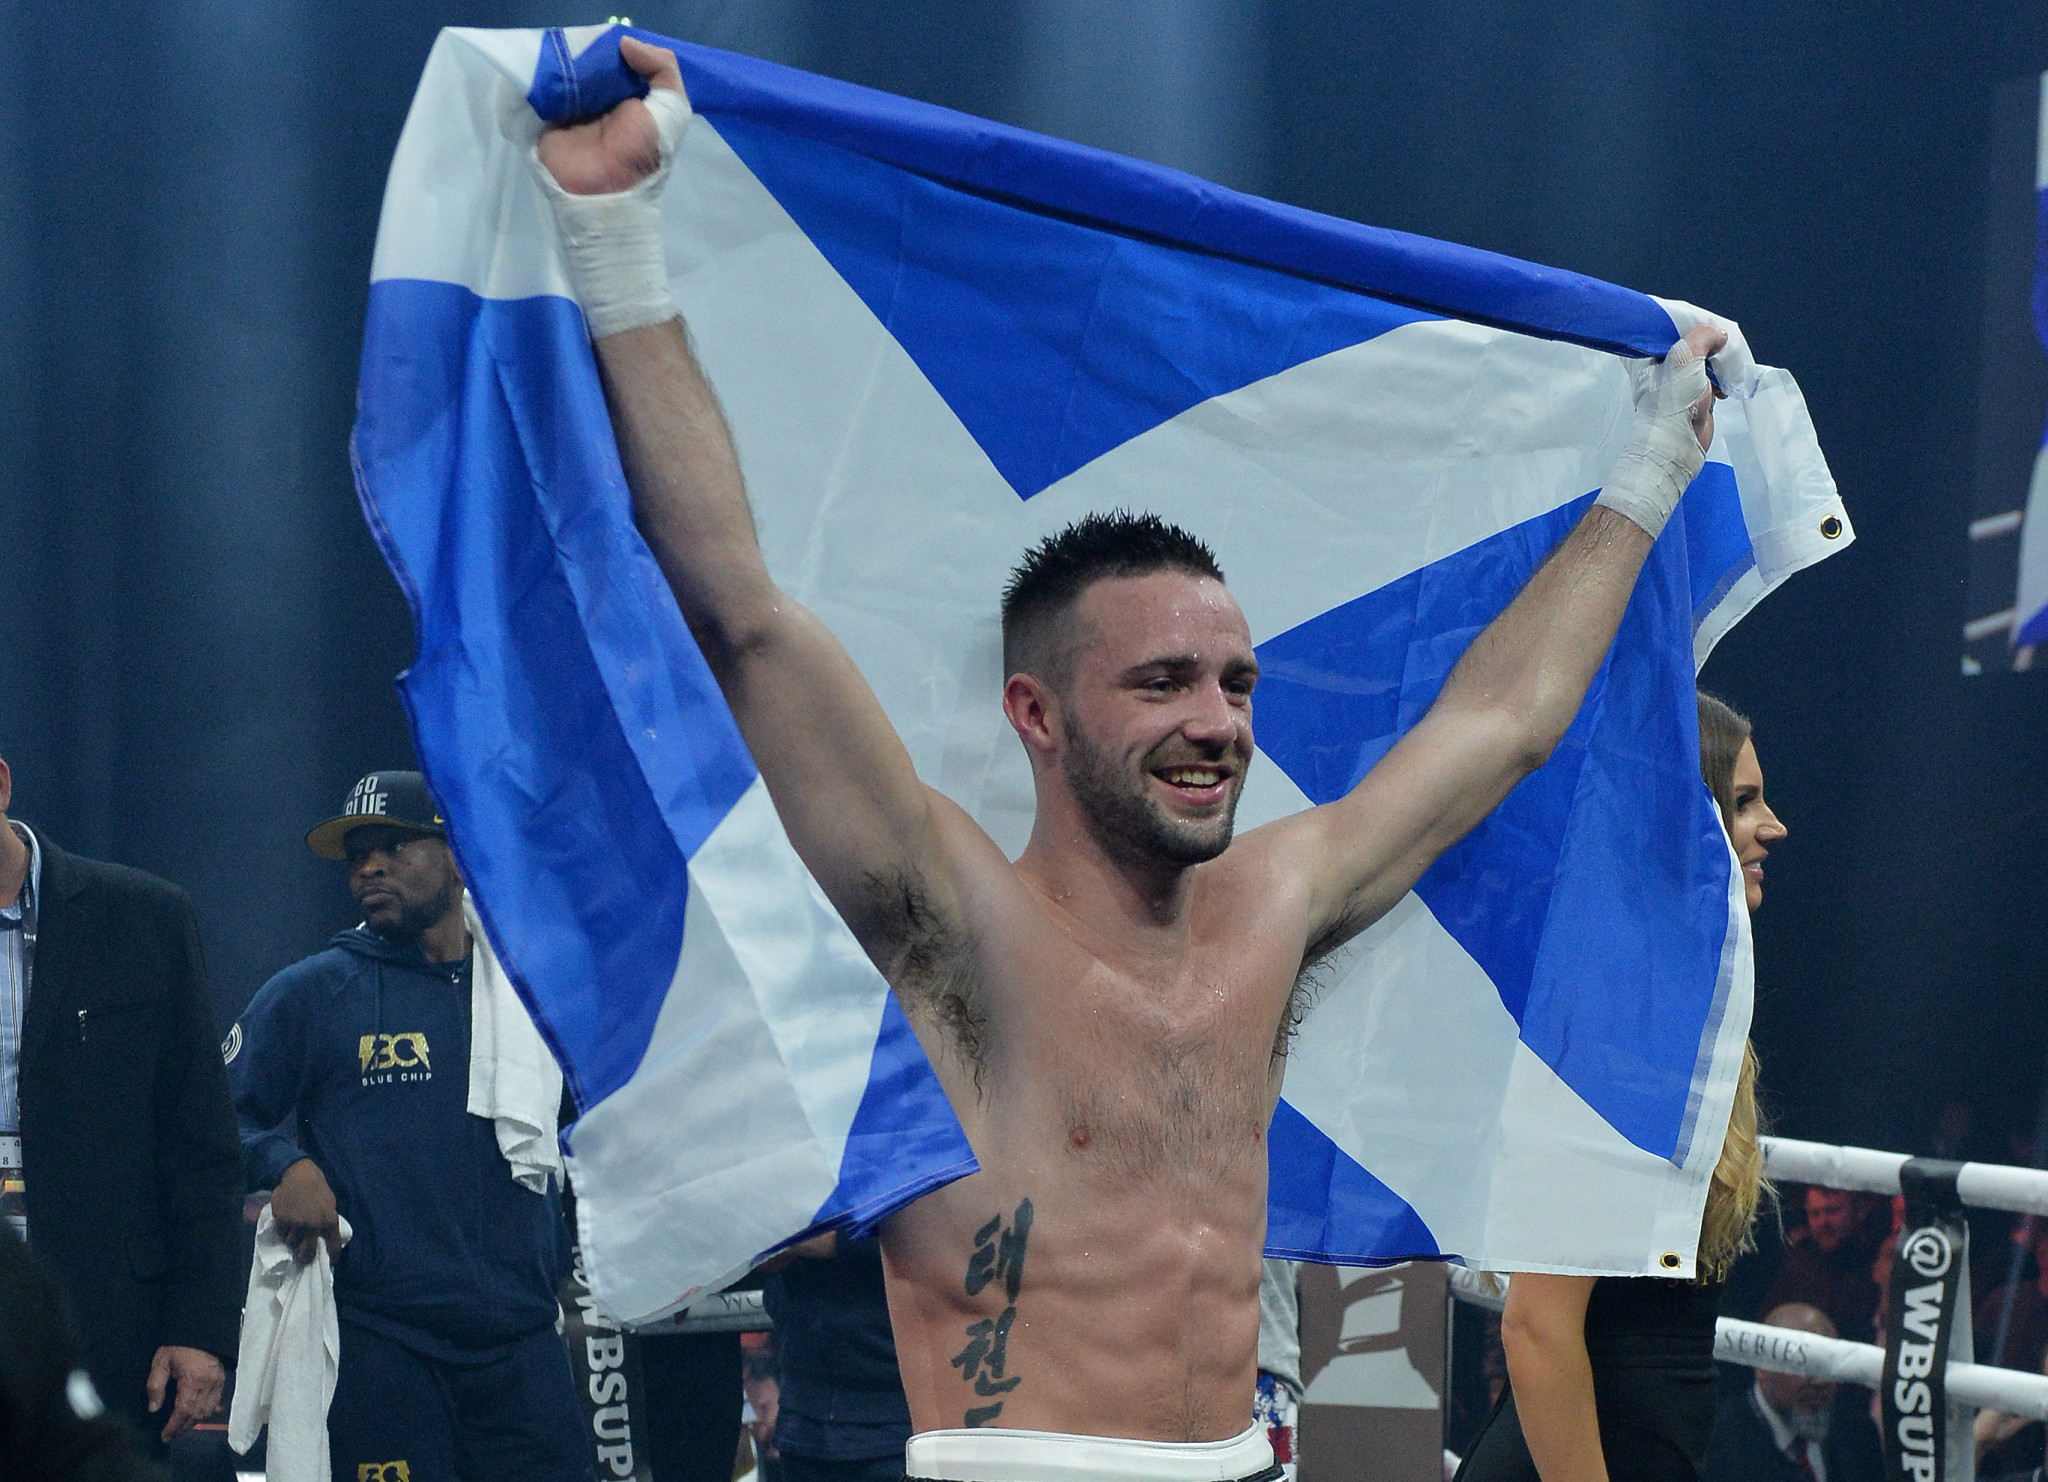 Boxer Josh Taylor has been excelling in the ring for Scotland ©Getty Images